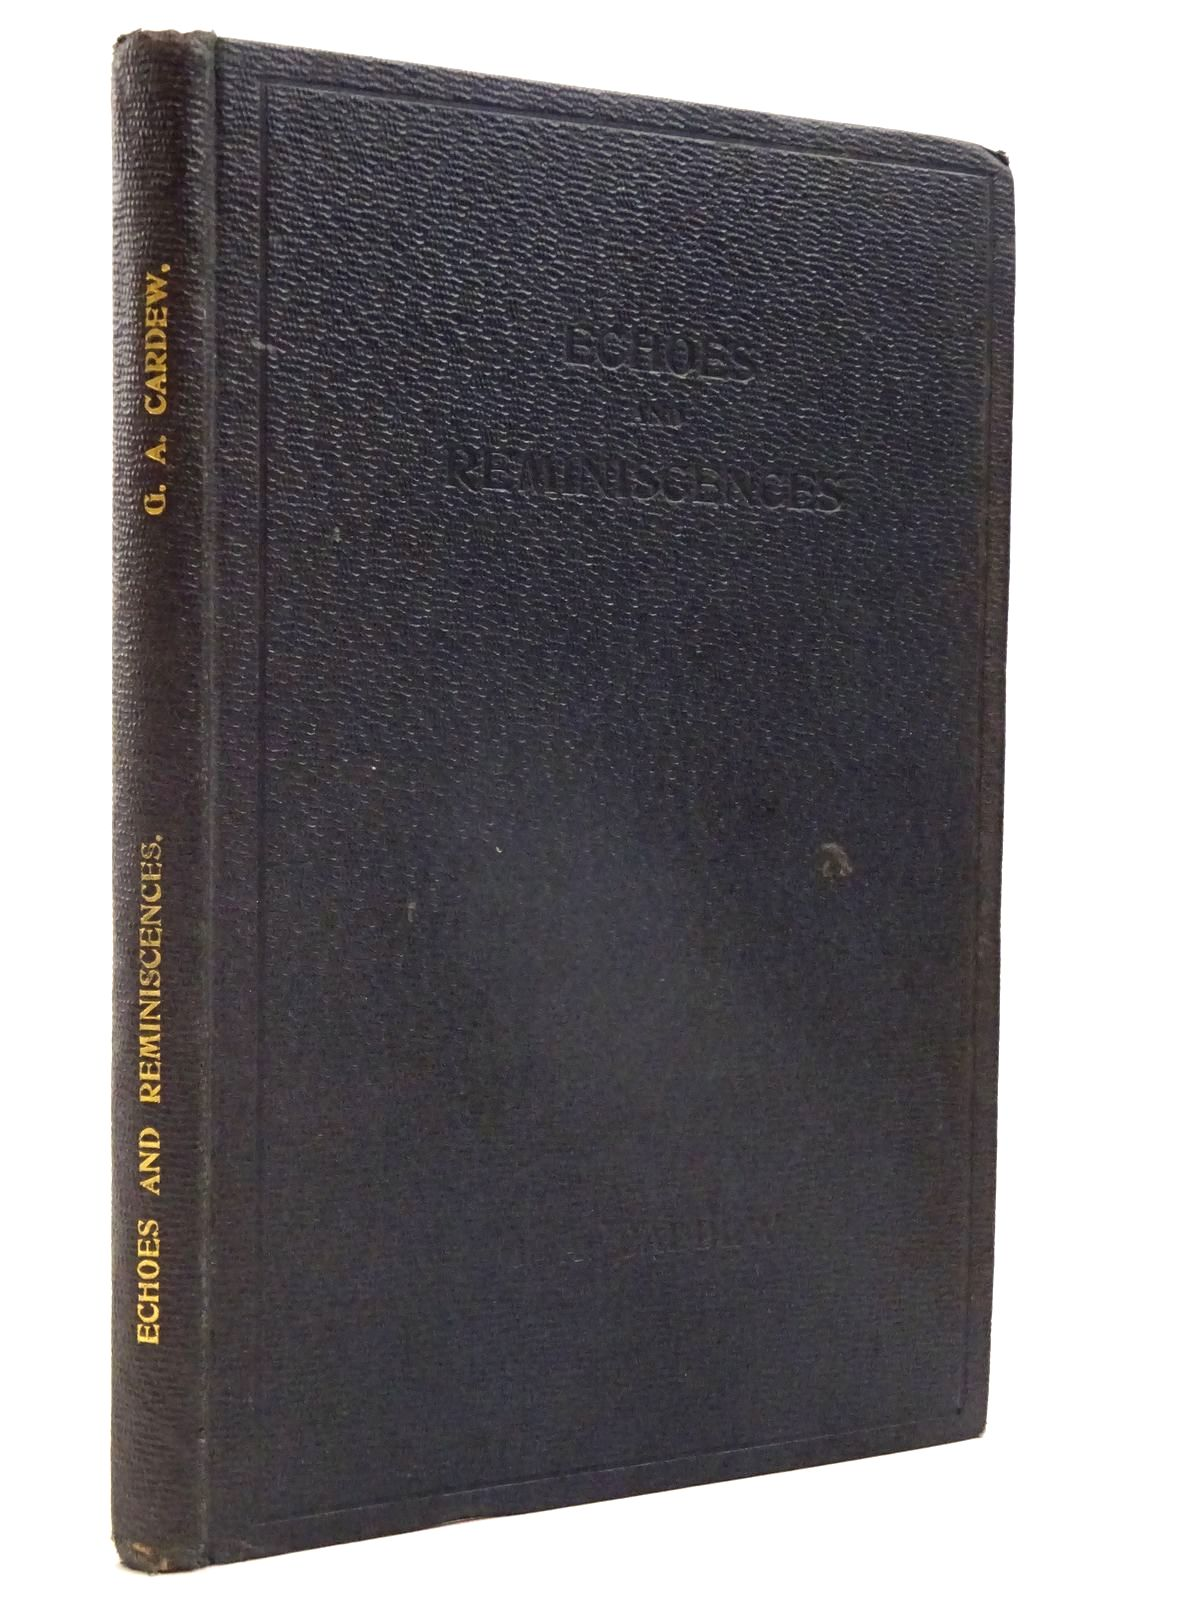 Photo of ECHOES & REMINISCENCES OF MEDICAL PRACTITIONERS IN CHELTENHAM OF THE NINETEENTH CENTURY written by Cardew, G. Arthur published by Ed. J. Burrow & Co. Ltd. (STOCK CODE: 2130089)  for sale by Stella & Rose's Books